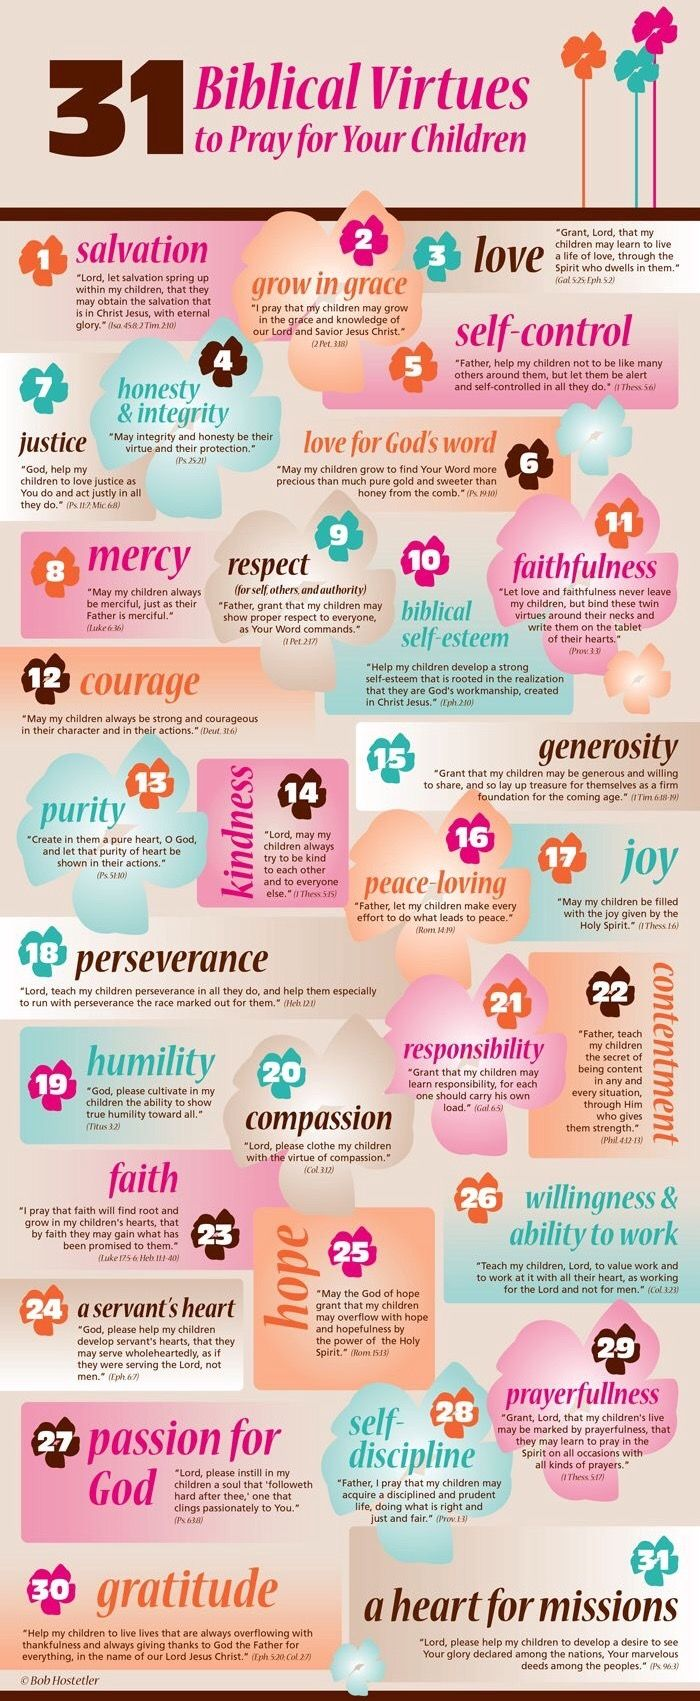 Biblical Virtues to pray over your children